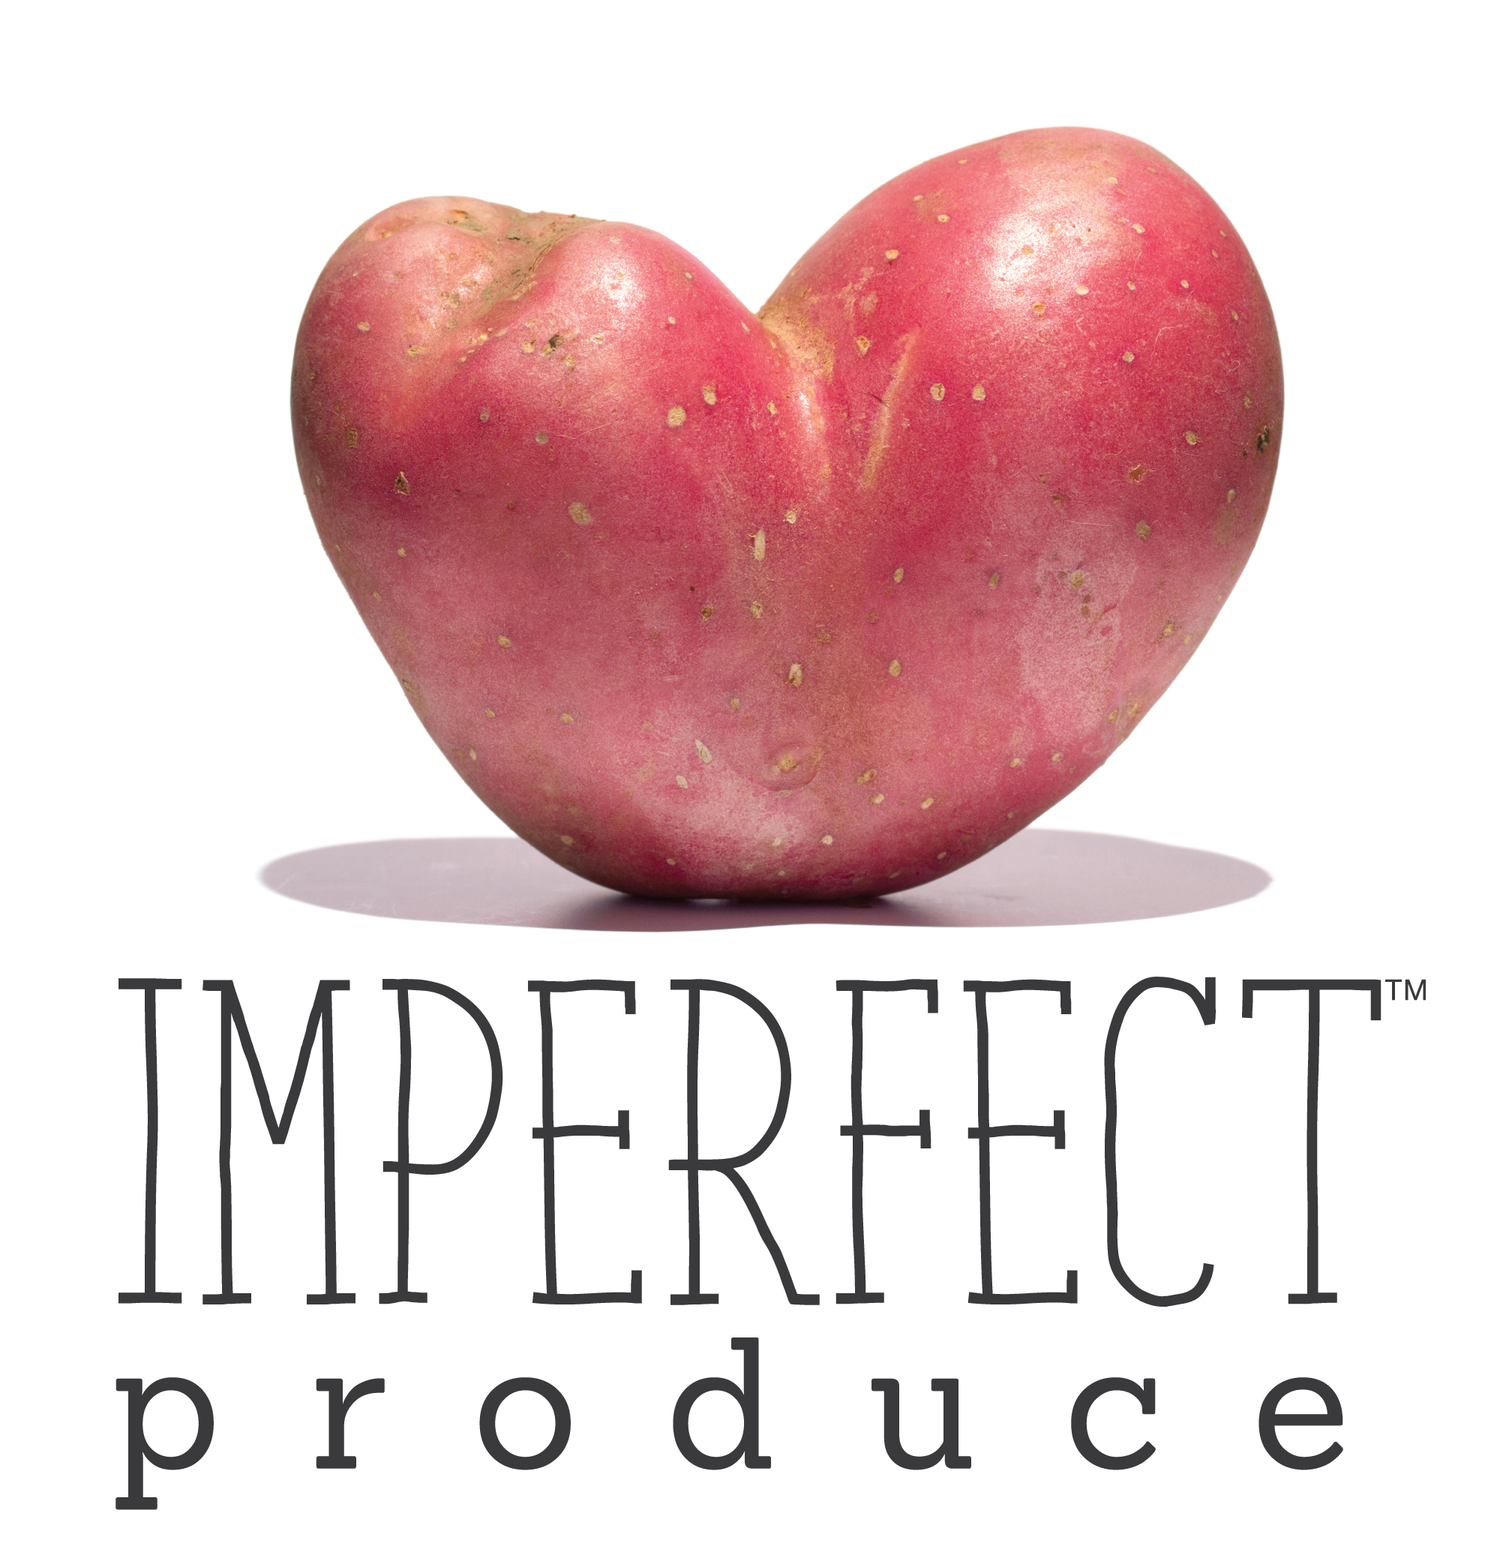 GET $10 OFF YOUR FIRST BOX - Every time you donate $10 or more to one of the causes listed on this site, you'll receive a code to get $10 off your first box of Imperfect Produce. JUST EMAIL US THE DONATION RECEIPT AT miles.lewis@paperearth.orgImperfect fights food waste by finding a home for 'ugly' produce. They source it directly from farms and deliver it to customers' doors for 30-50% less than grocery store prices. They offer a subscription produce box that's affordable, convenient, customizable, and delicious.THIS SERVICE ONLY COVERS OUR SAN FRANCISCO, LOS ANGELES, AND ORANGE COUNTY AUDIENCE FOR NOW.